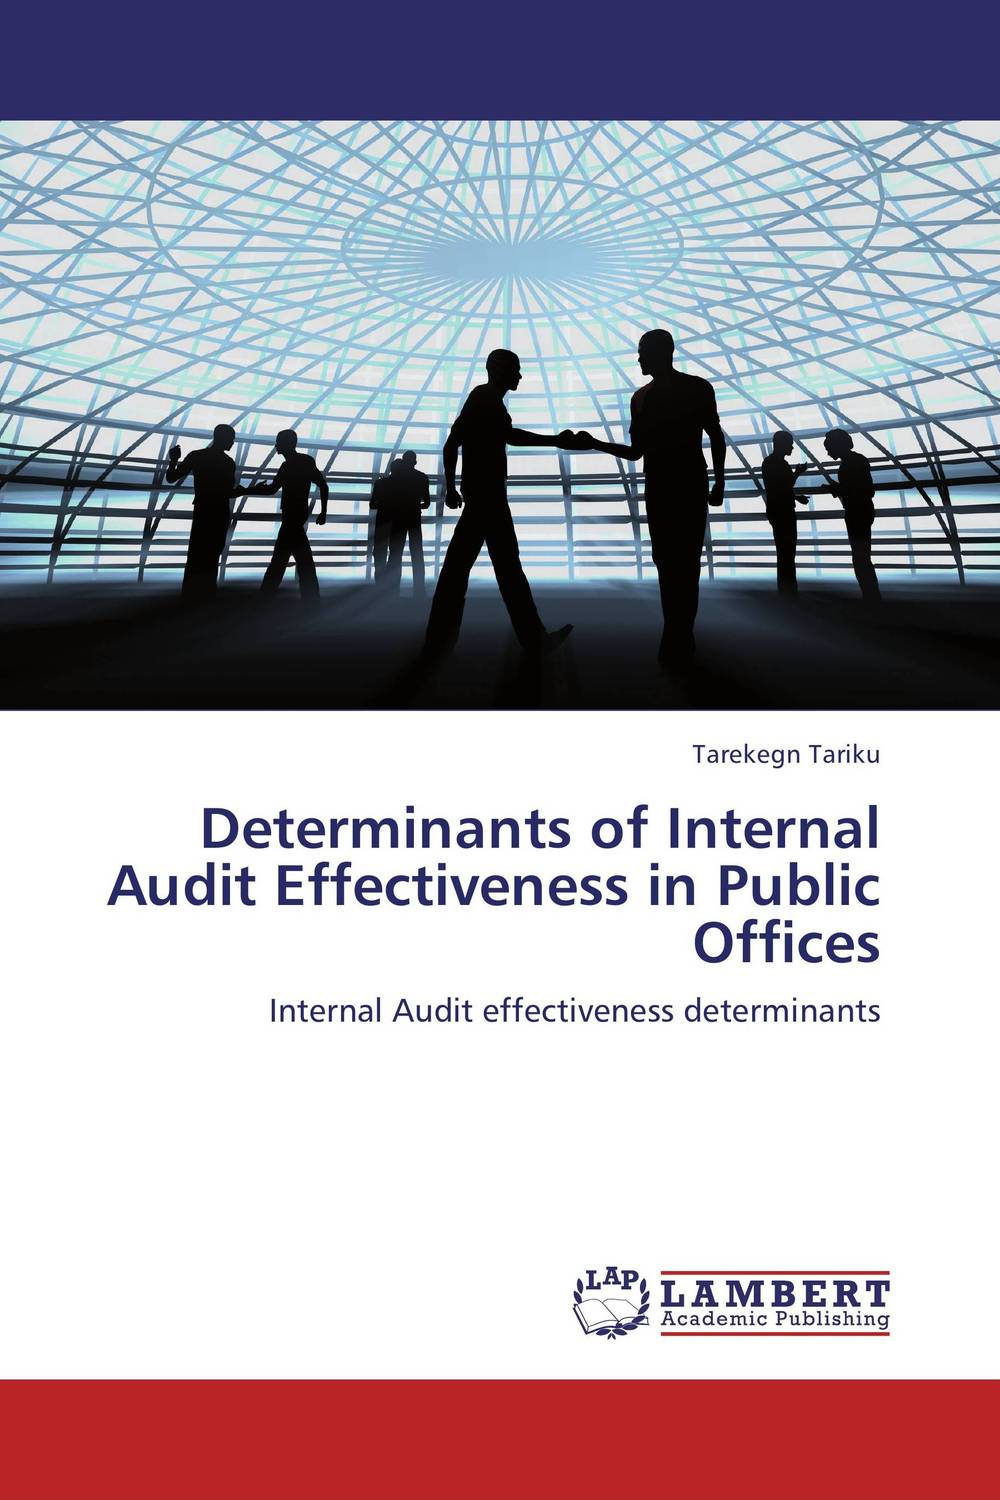 Determinants of Internal Audit Effectiveness in Public Offices